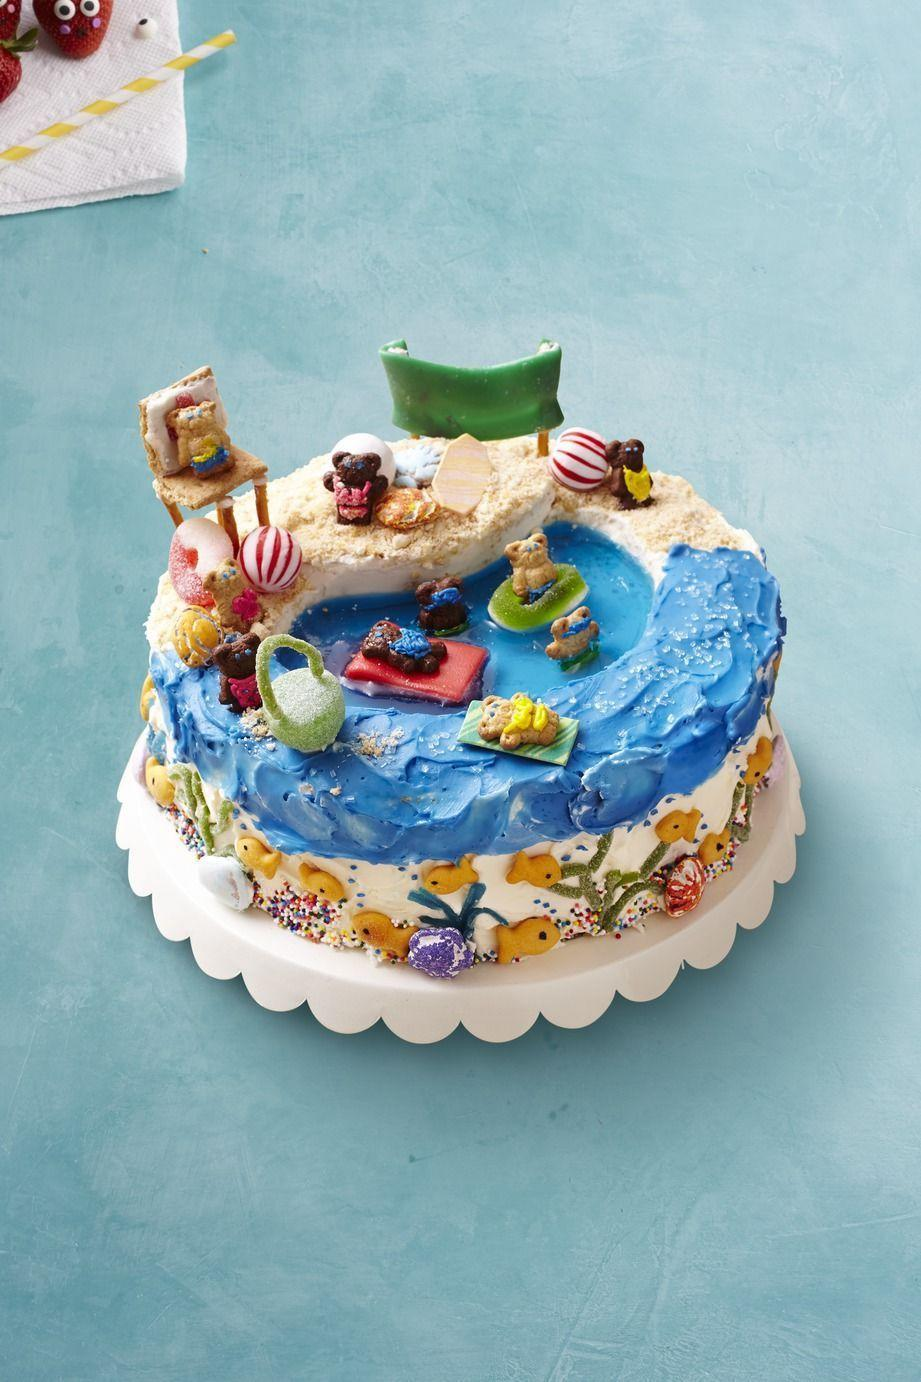 """<p>Test your baking skills with this sophisticated beach cake. Not only will you make the cake from scratch, you'll also decorate it from top to bottom. But you might want to schedule in a couple of hours to get this cake perfectly done.</p><p><em><strong><a href=""""https://www.womansday.com/food-recipes/food-drinks/recipes/a54842/beach-cake-recipe/"""" rel=""""nofollow noopener"""" target=""""_blank"""" data-ylk=""""slk:Get the Beach Cake recipe."""" class=""""link rapid-noclick-resp"""">Get the Beach Cake recipe.</a></strong></em></p>"""